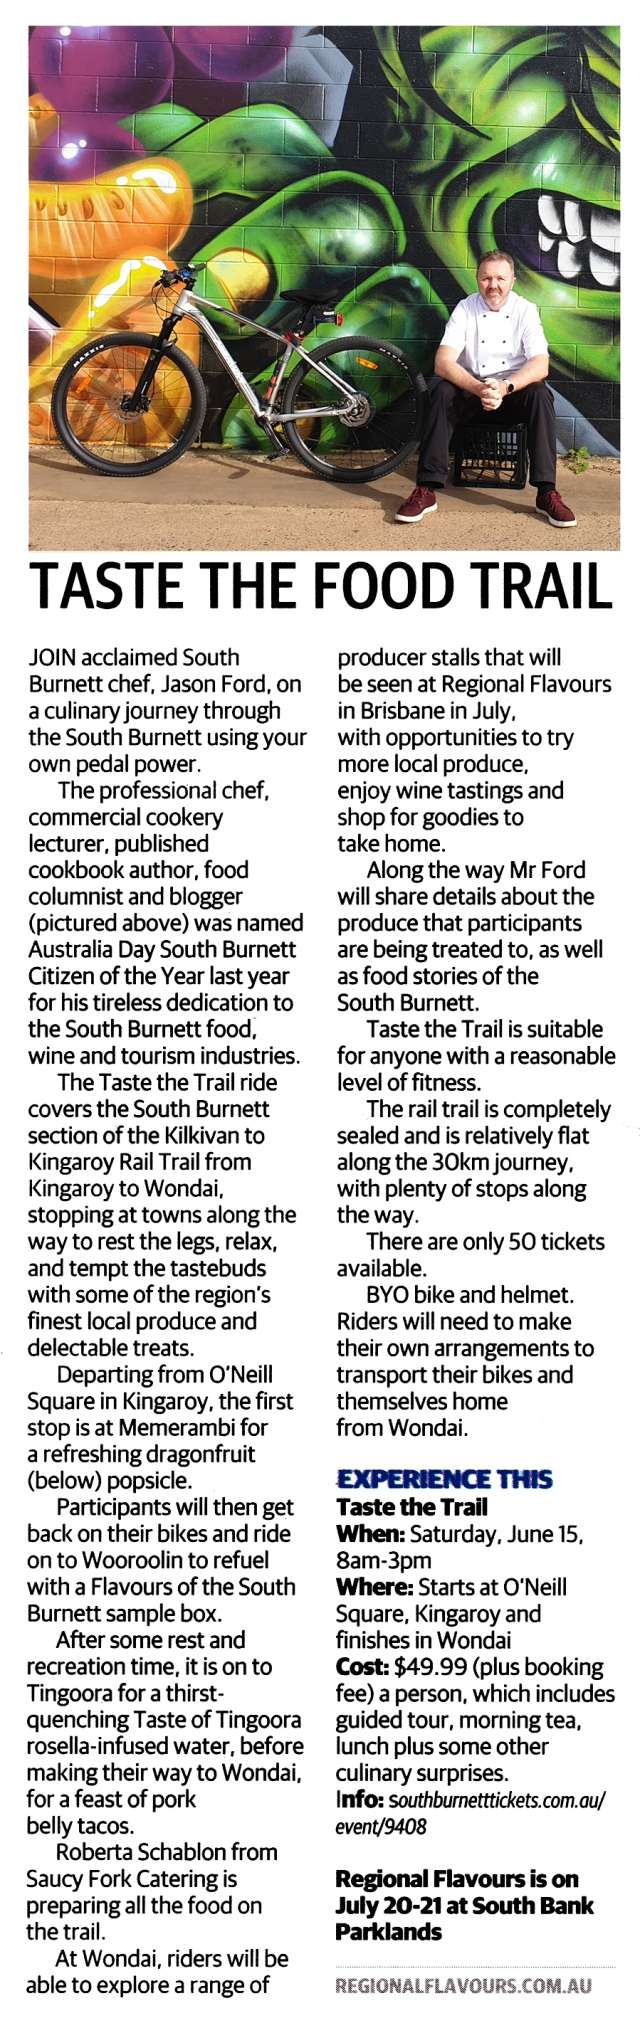 taste The Trail Article